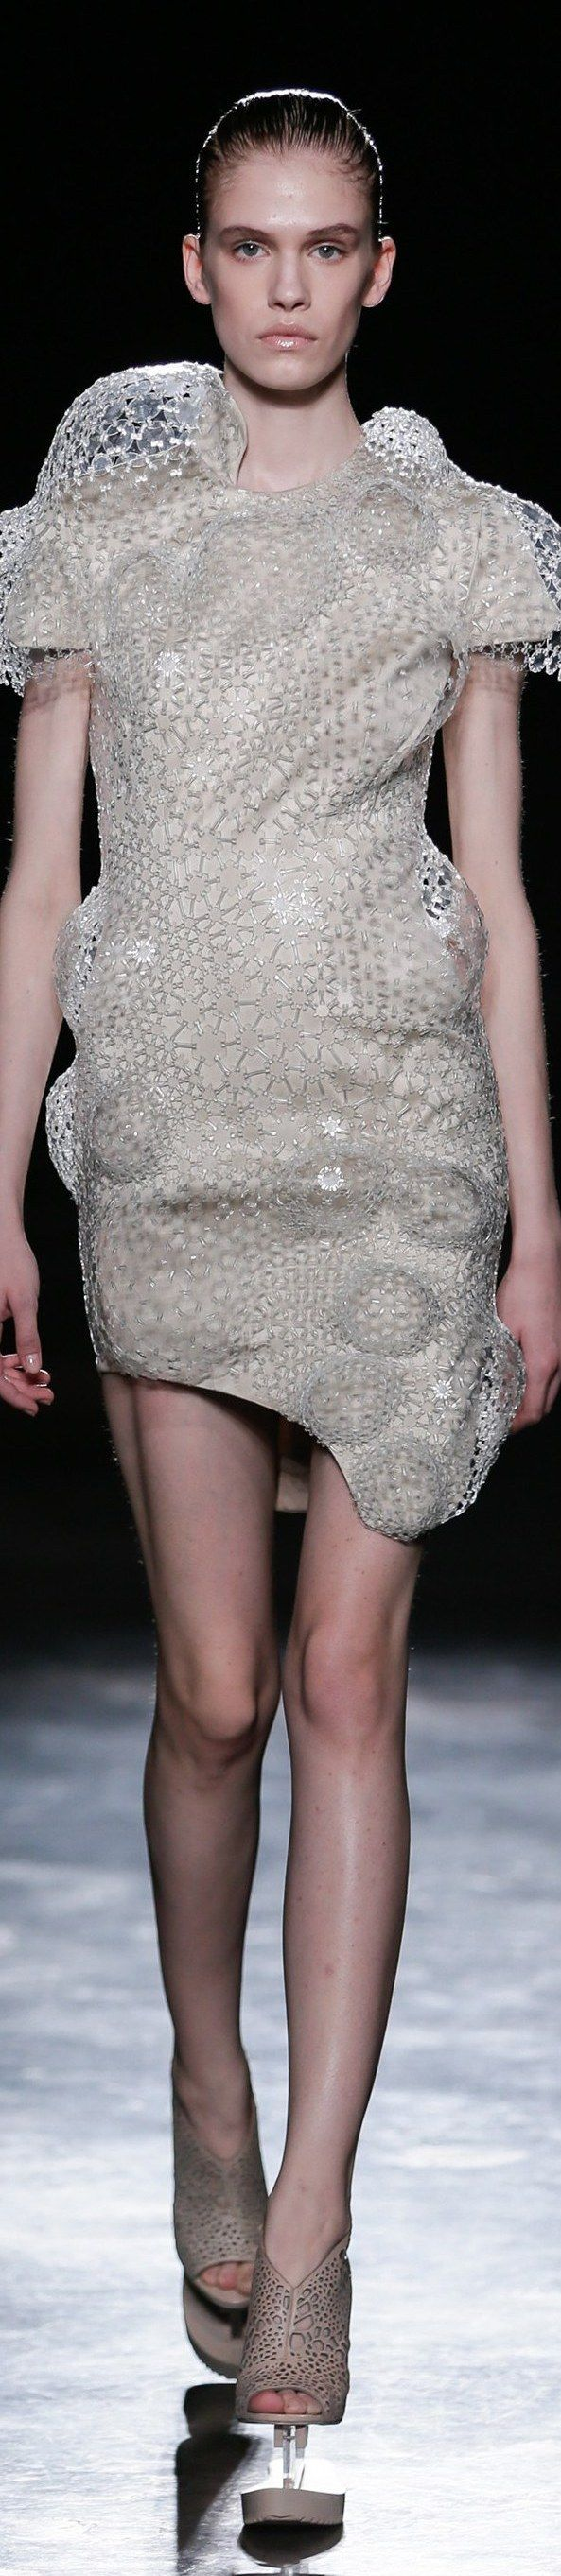 Iris van Herpen - FALL 2016 READY-TO-WEAR